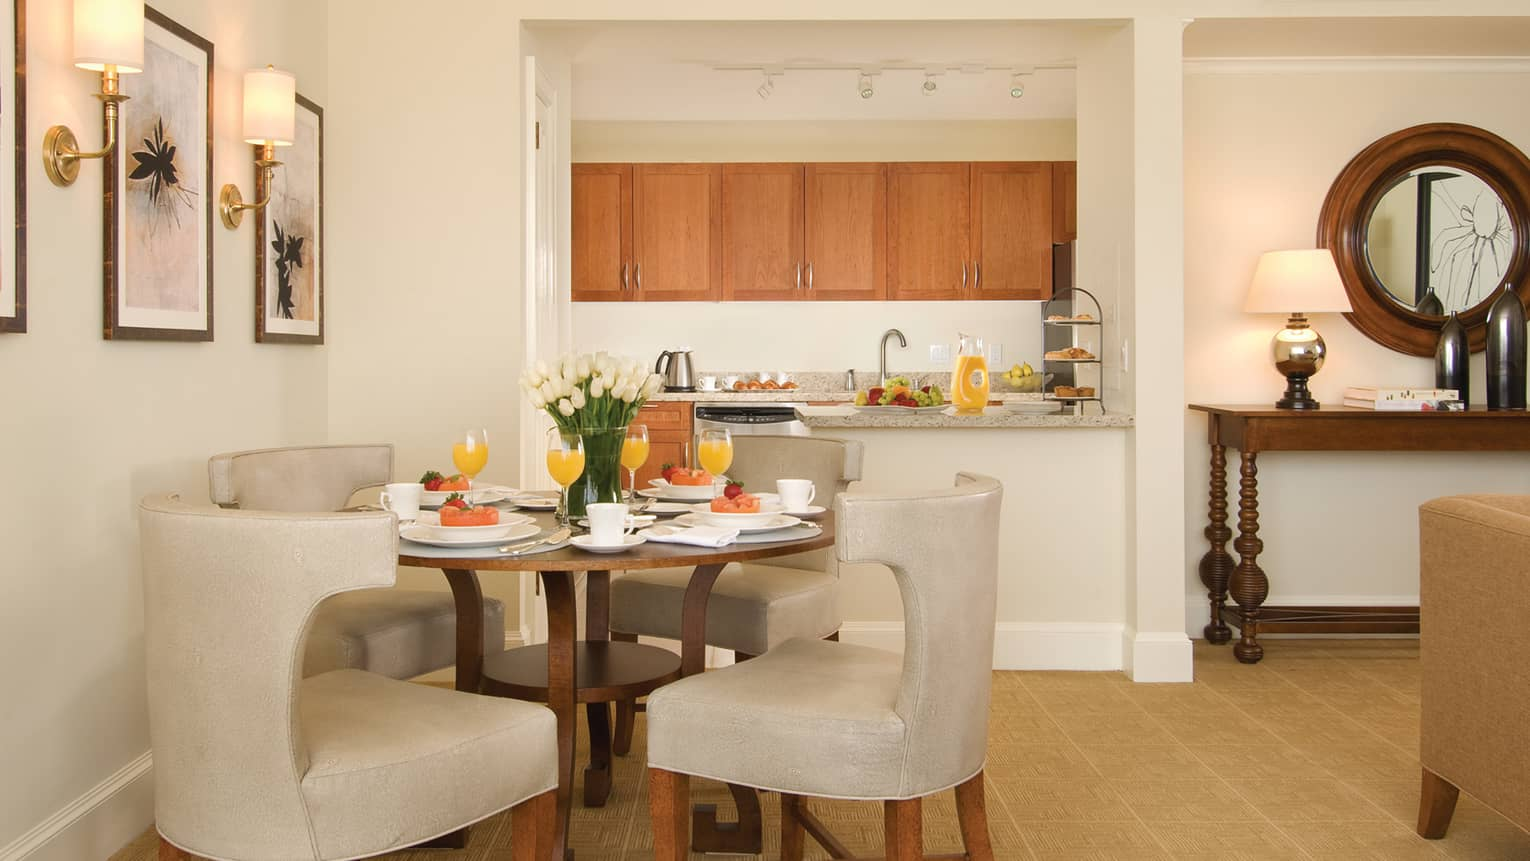 Wine glasses with orange mimosas, fresh fruit plates on round in-room dining table with white chairs